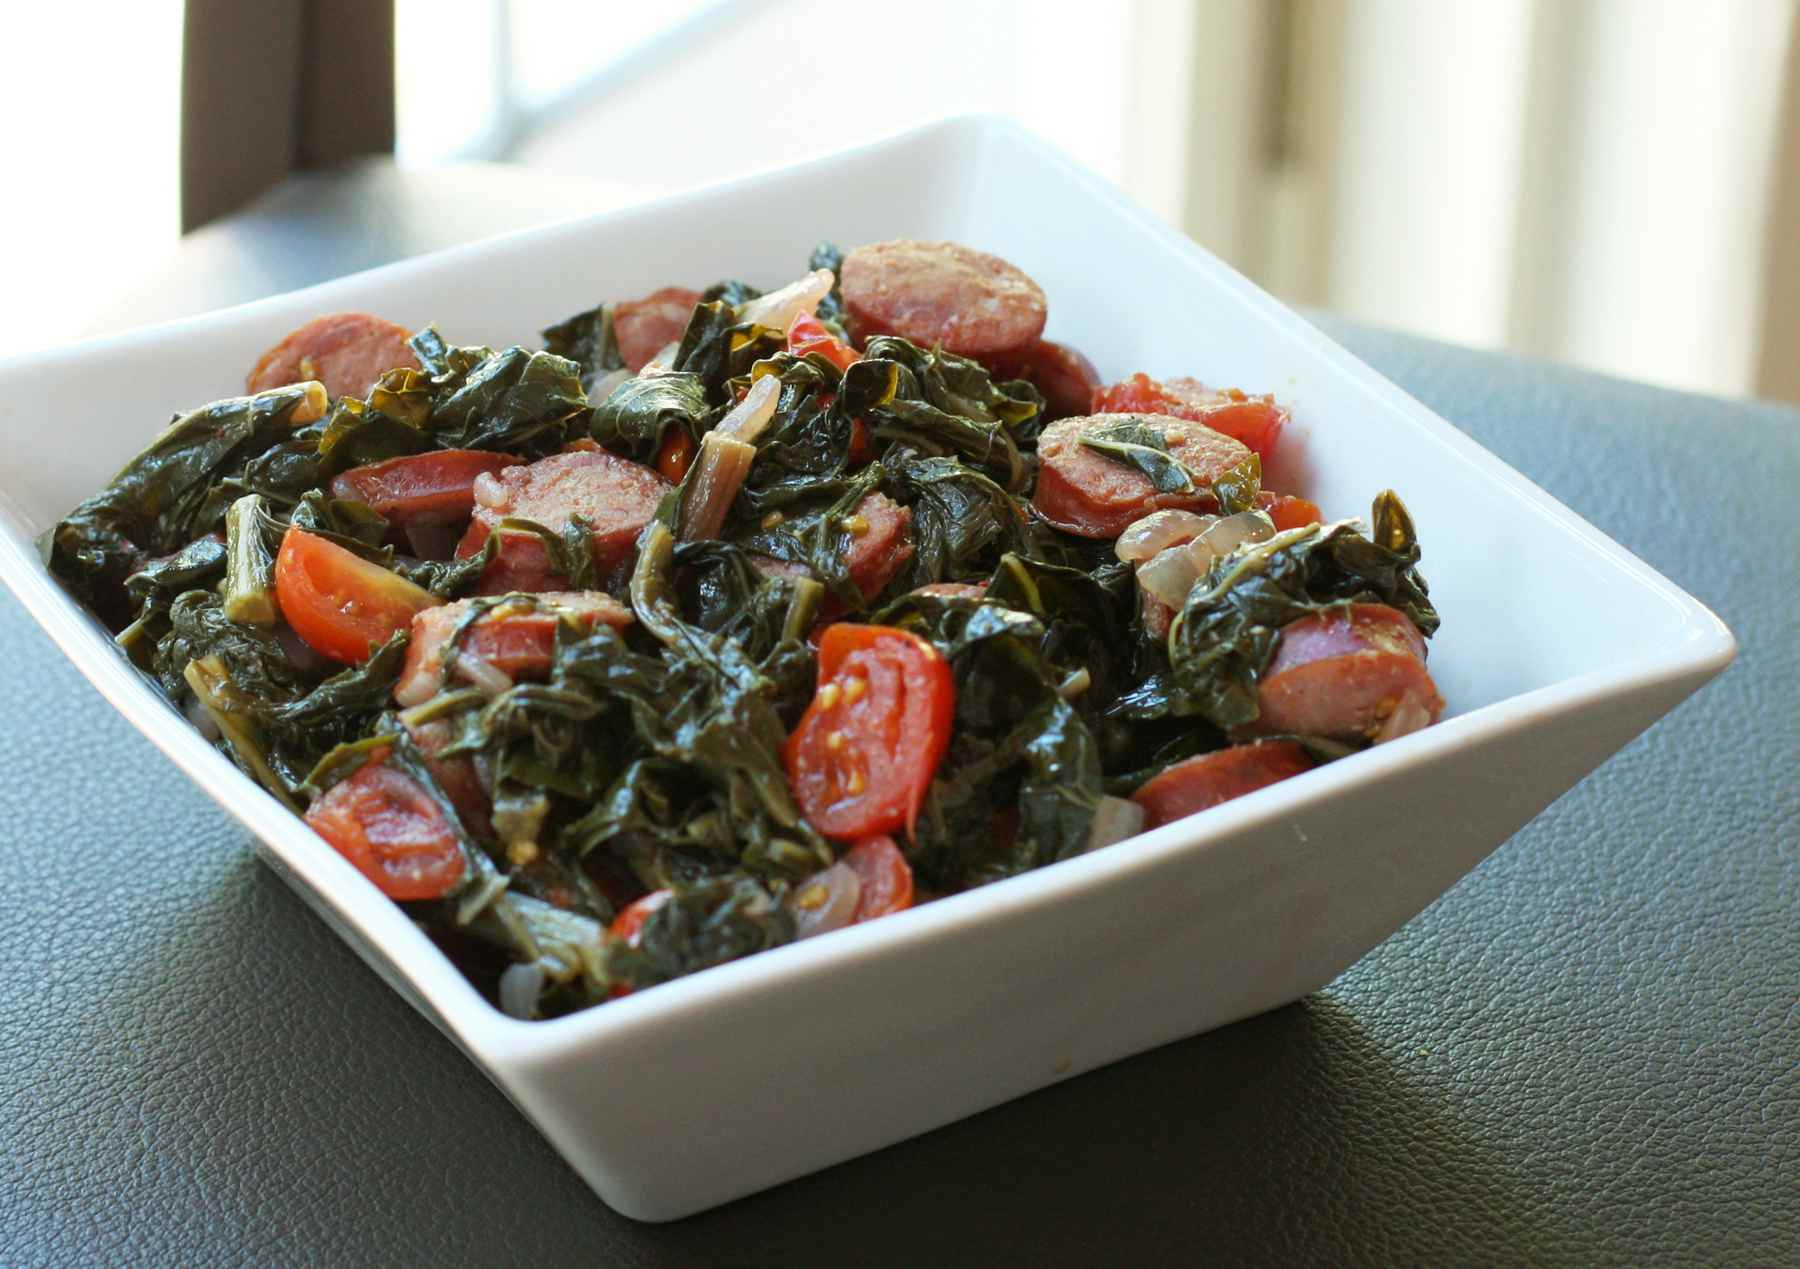 Spicy Kale and Mustard Greens With Cajun Sausage